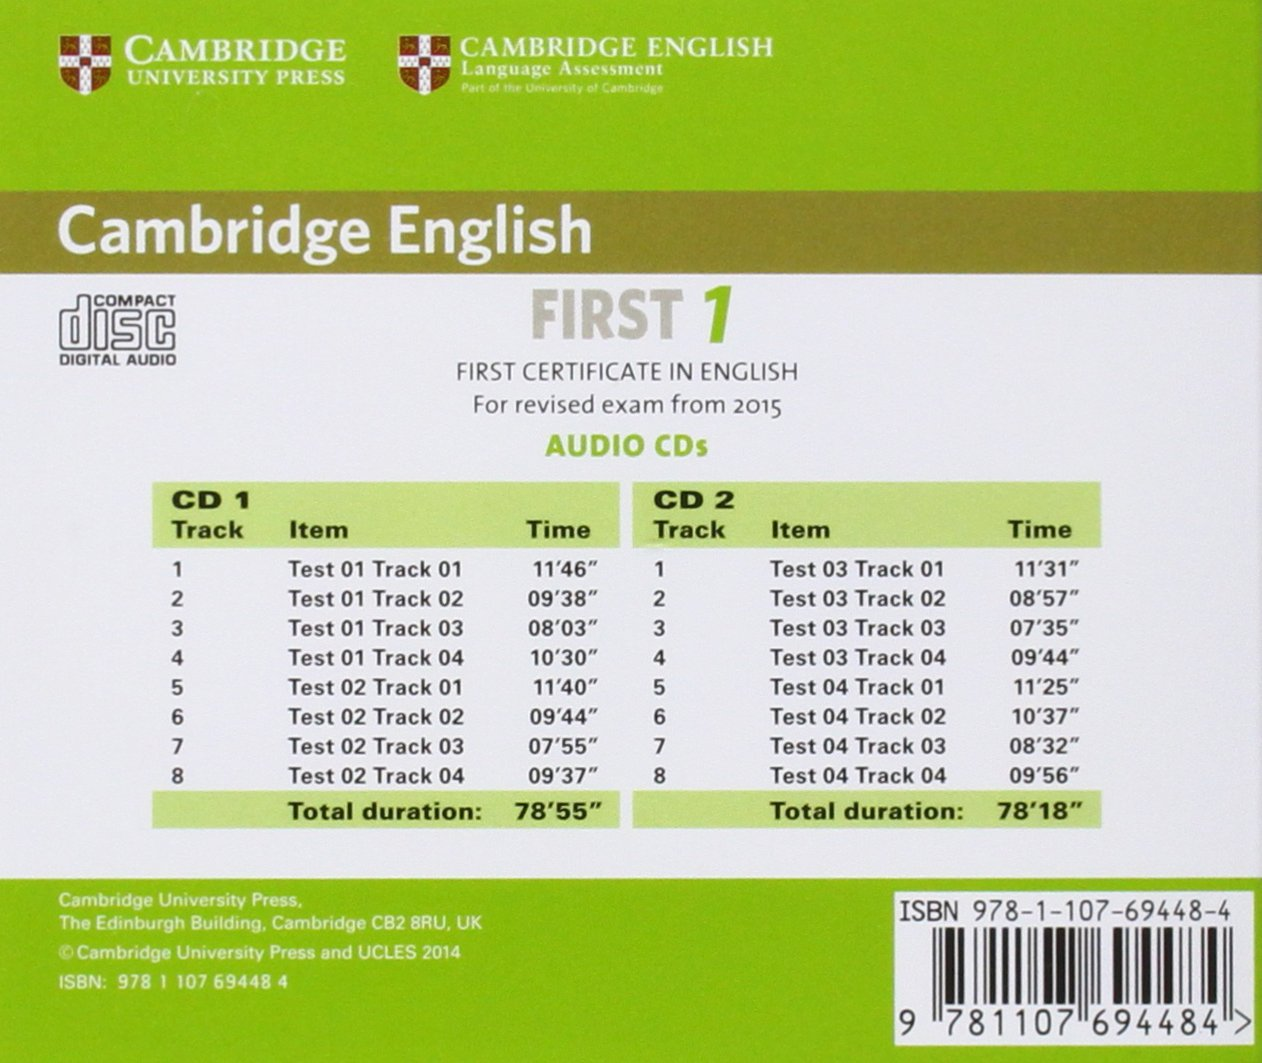 cambridge english first  Cambridge English First 1 for Revised Exam from 2015 Audio CDs 2 ...